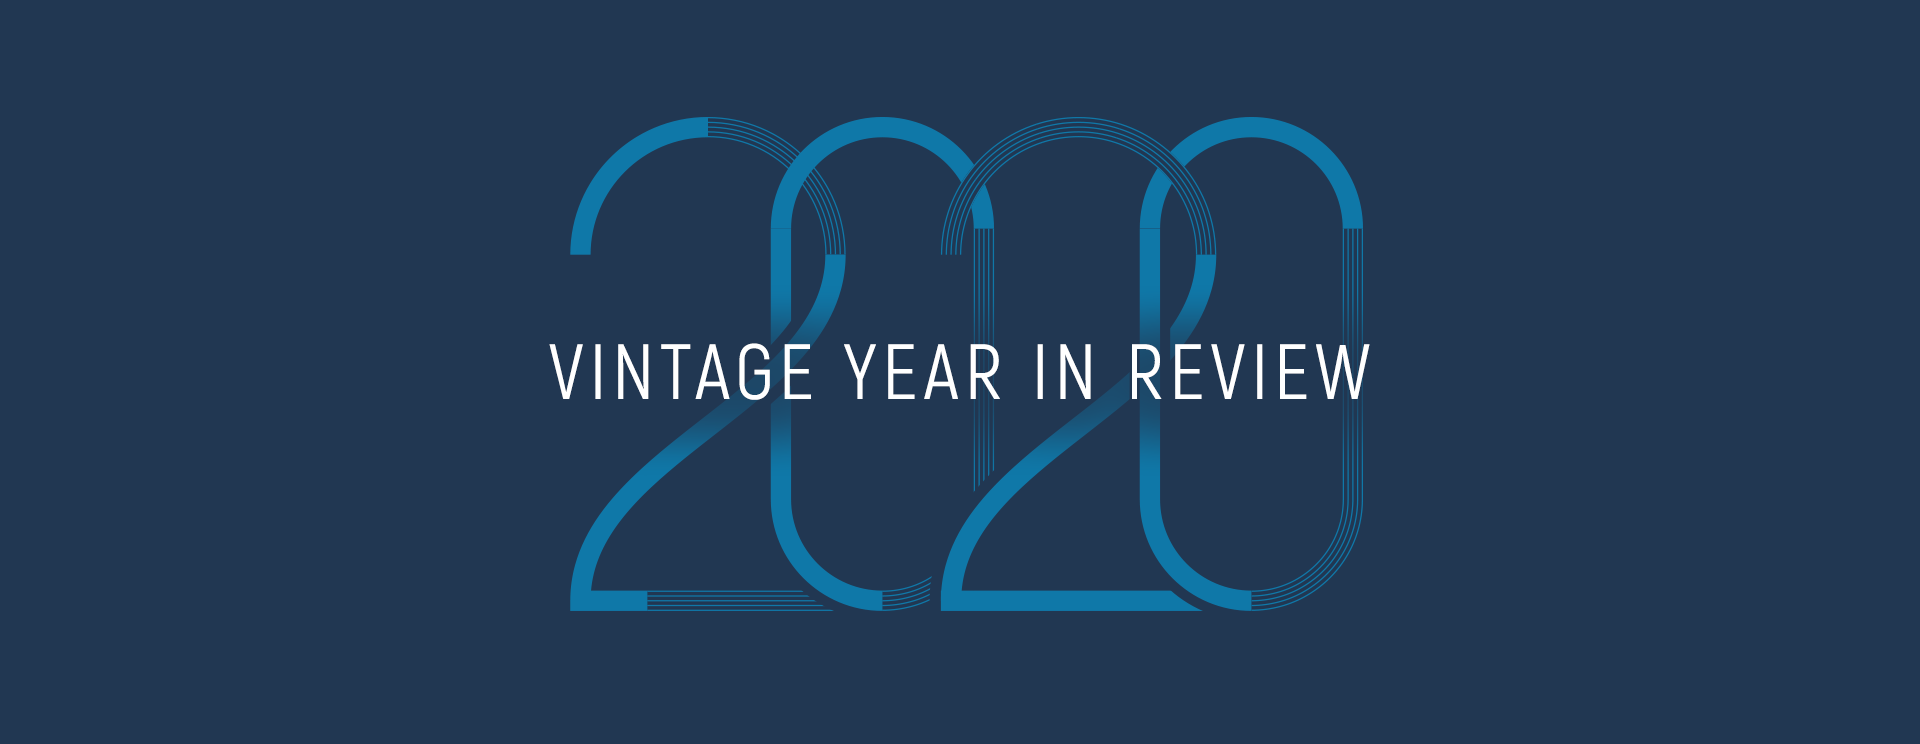 2020 Vintage Year in Review